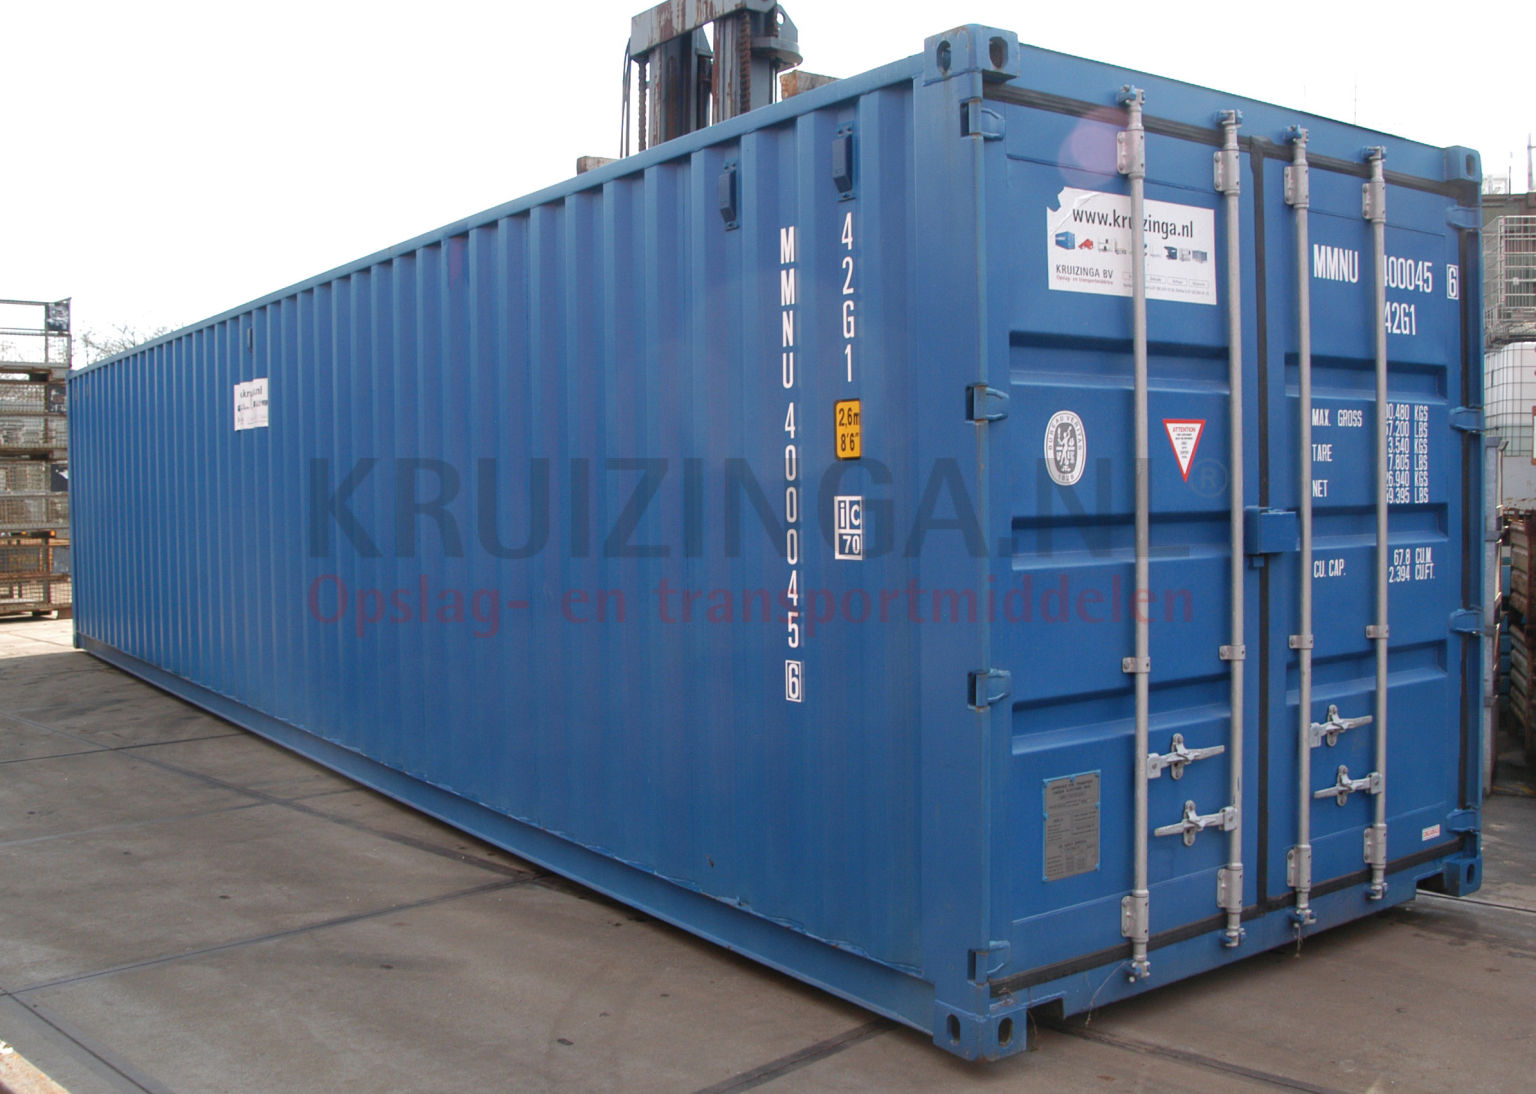 container materialcontainer 40 fu gebraucht 3250. Black Bedroom Furniture Sets. Home Design Ideas